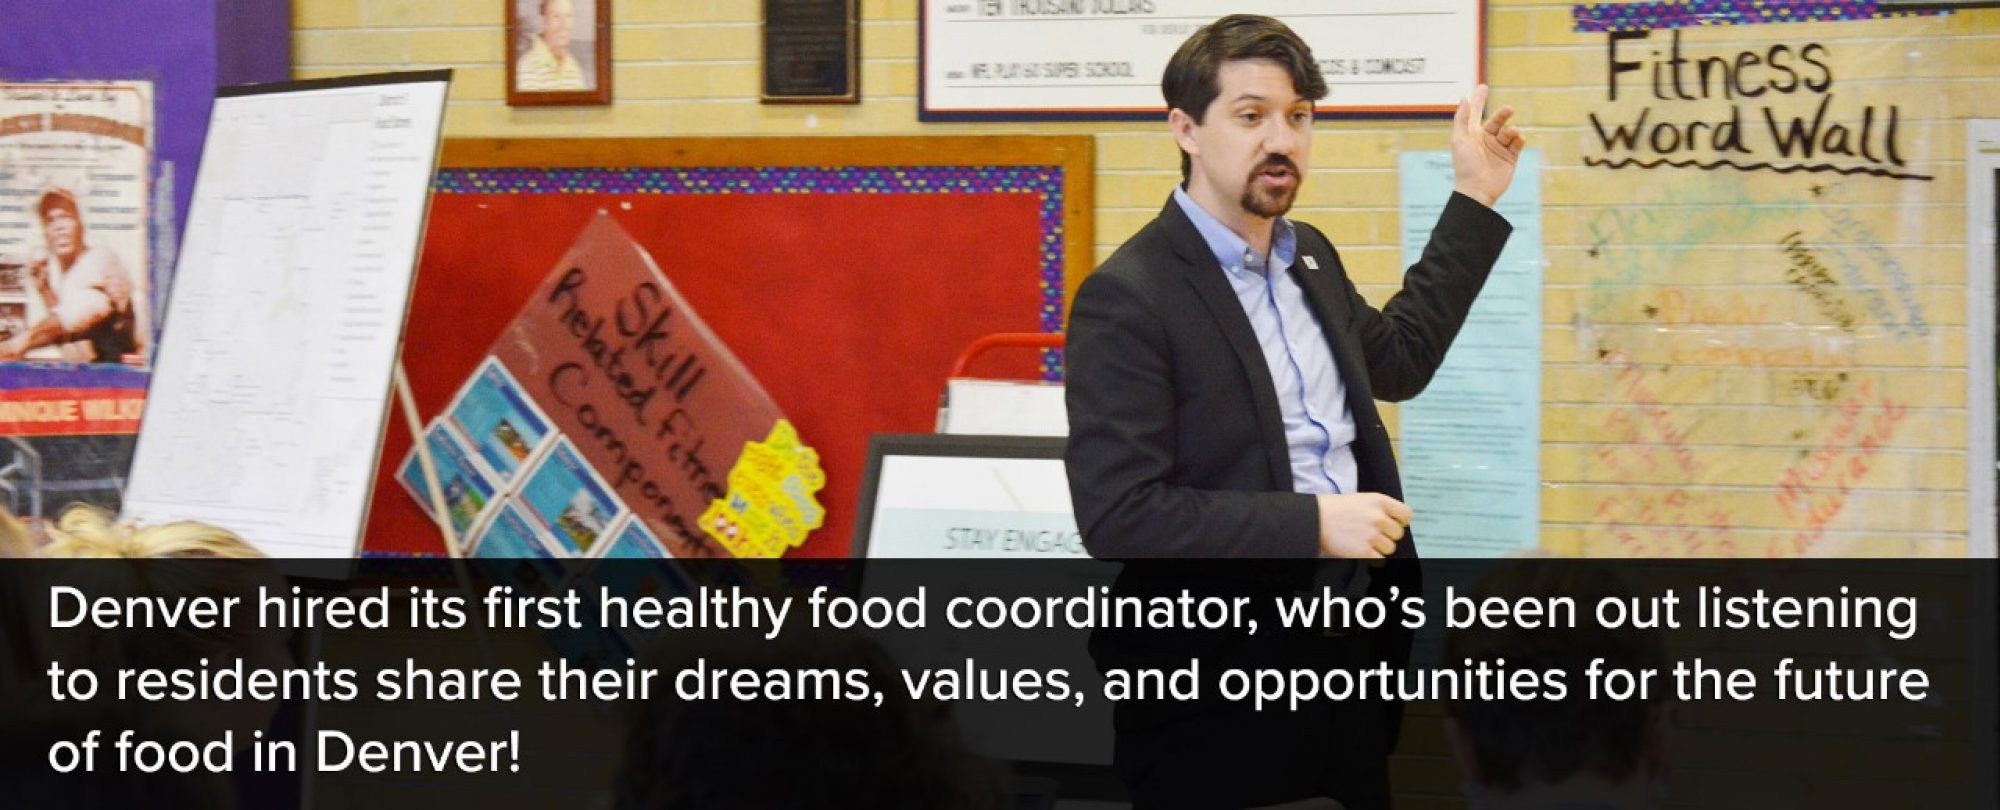 Photo of Denver's new healthy food coordinator. Denver hired its first healthy food coorsinator, who's been out listening to residents share their dreams, values, and opportunities for the future of food in Denver.